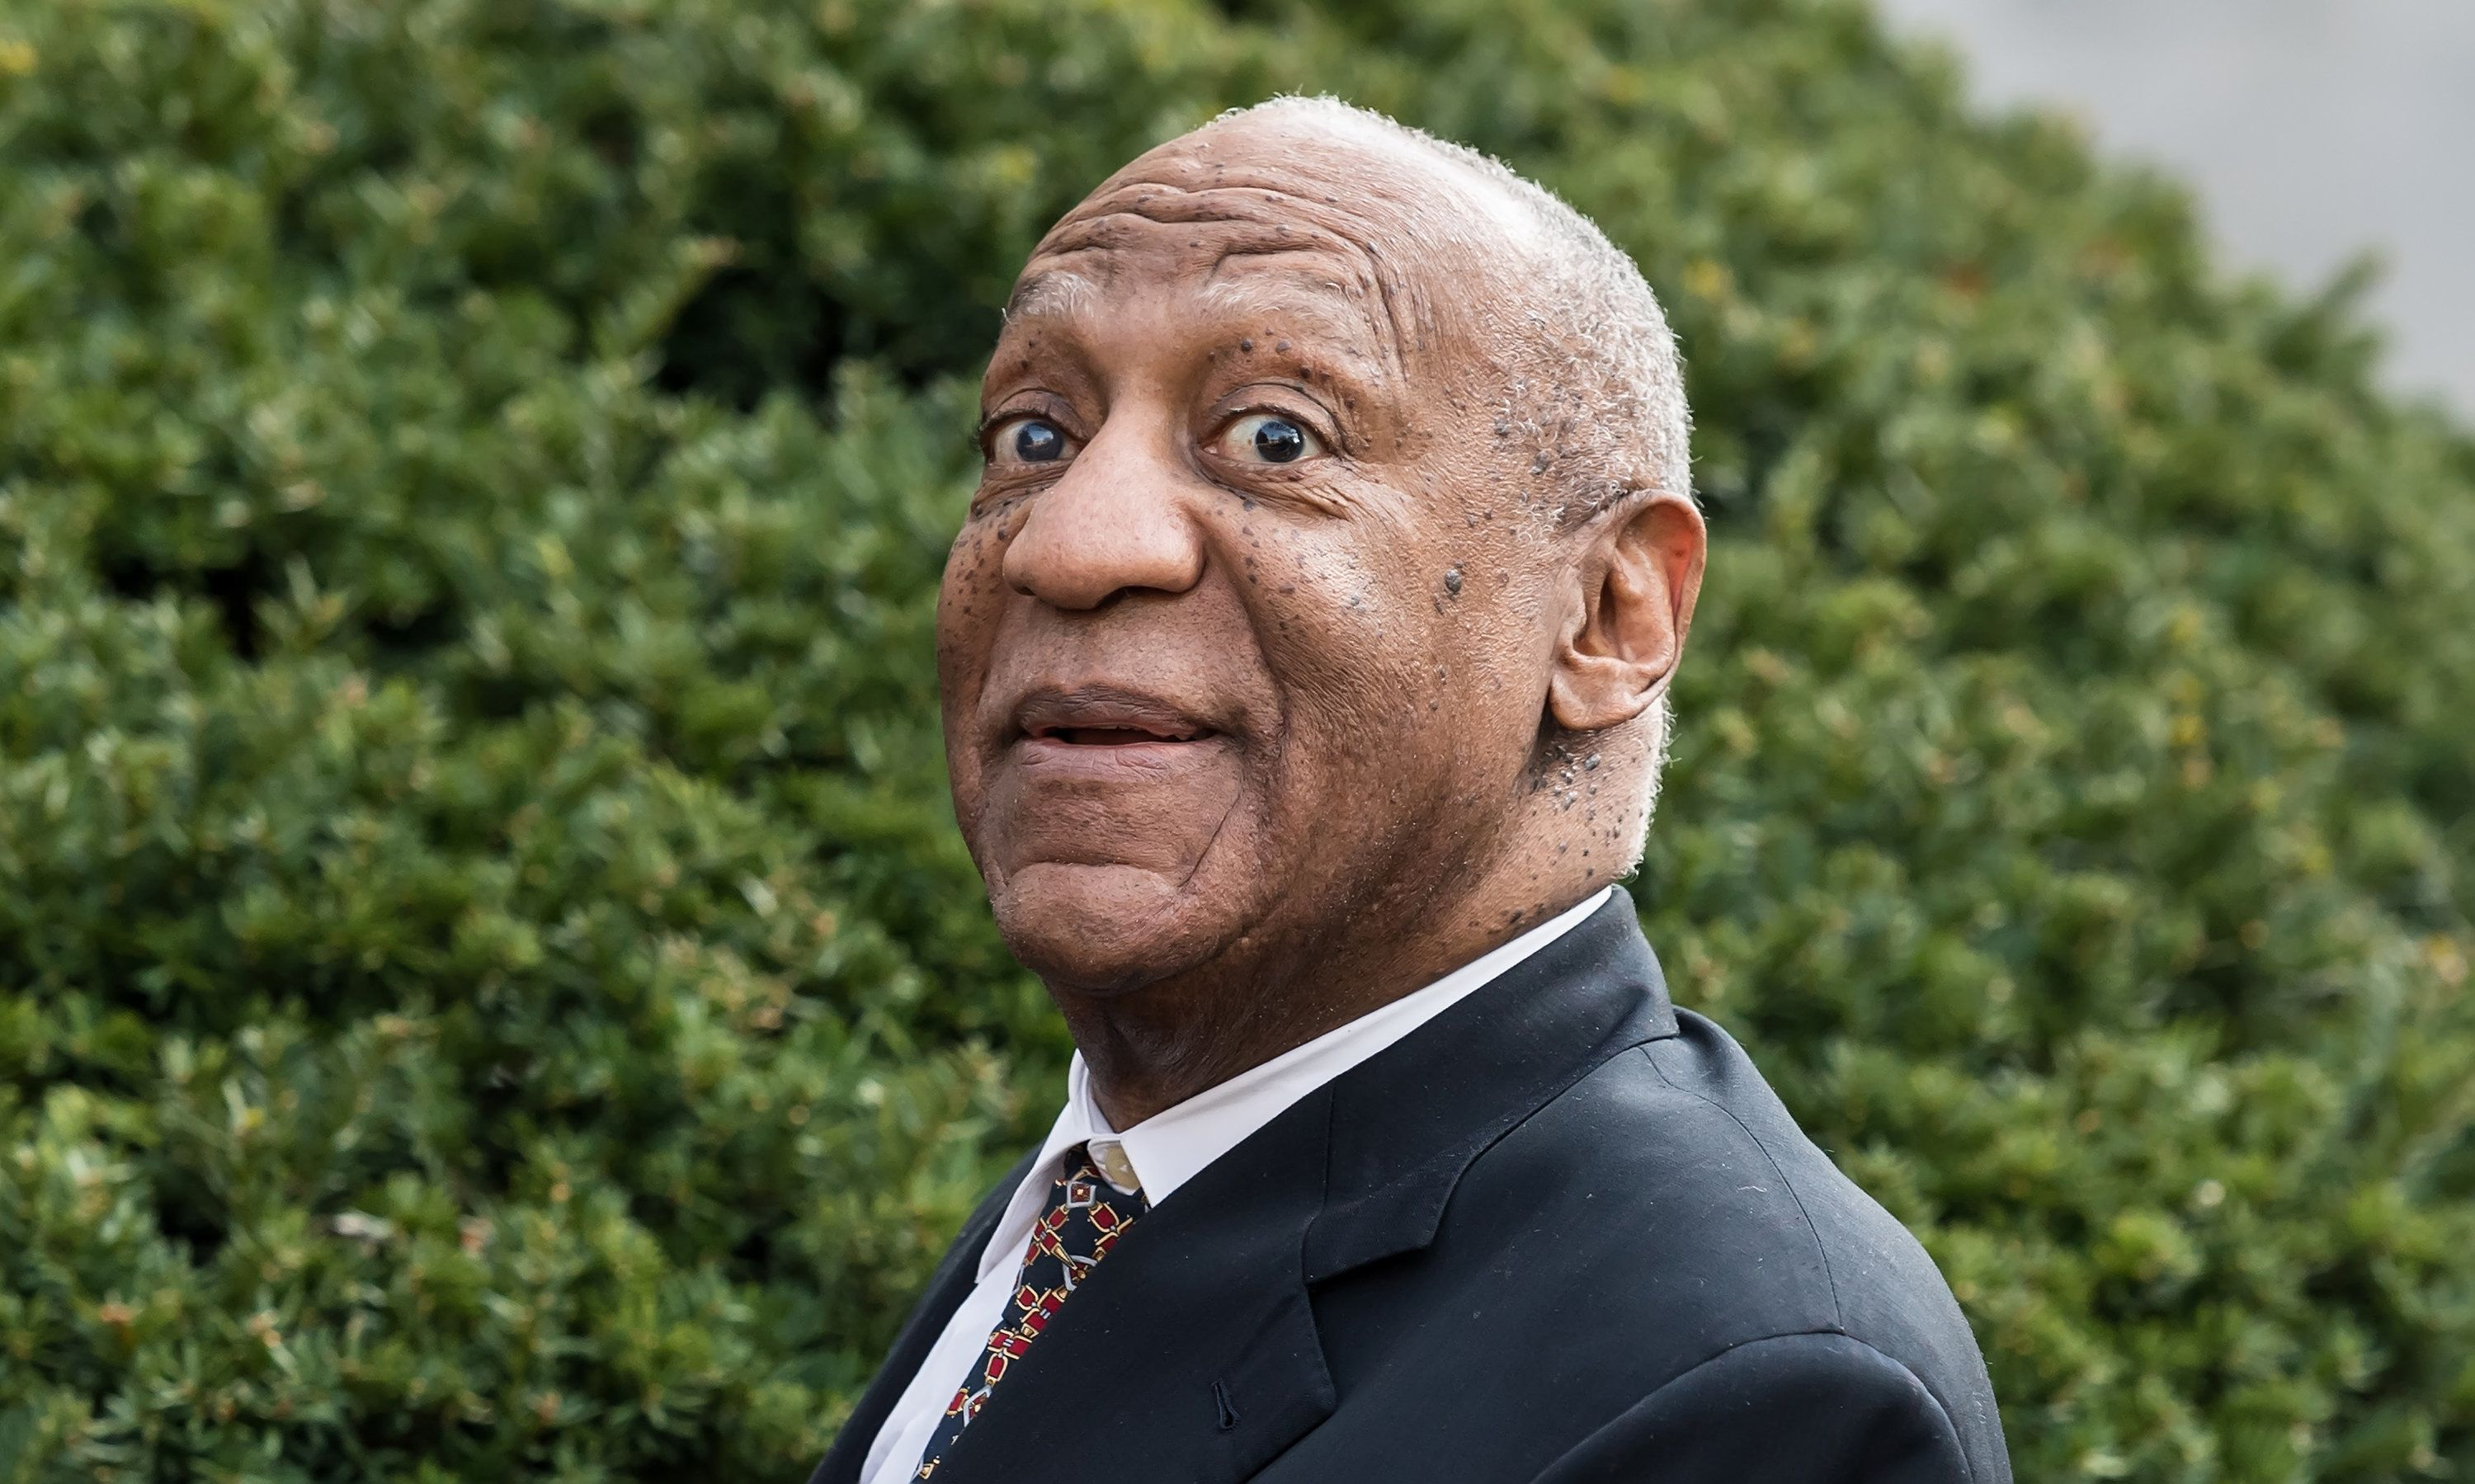 NORRISTOWN, PA - APRIL 13:  Actor/ stand-up comedian Bill Cosby leaving the Montgomery County Courthouse for the fifth day of his retrial for sexual assault charges on April 13, 2018 in Norristown, Pennsylvania. A former Temple University employee alleges that the entertainer drugged and molested her in 2004 at his home in suburban Philadelphia. More than 40 women have accused the 80 year old entertainer of sexual assault.  (Photo by Gilbert Carrasquillo/Getty Images)